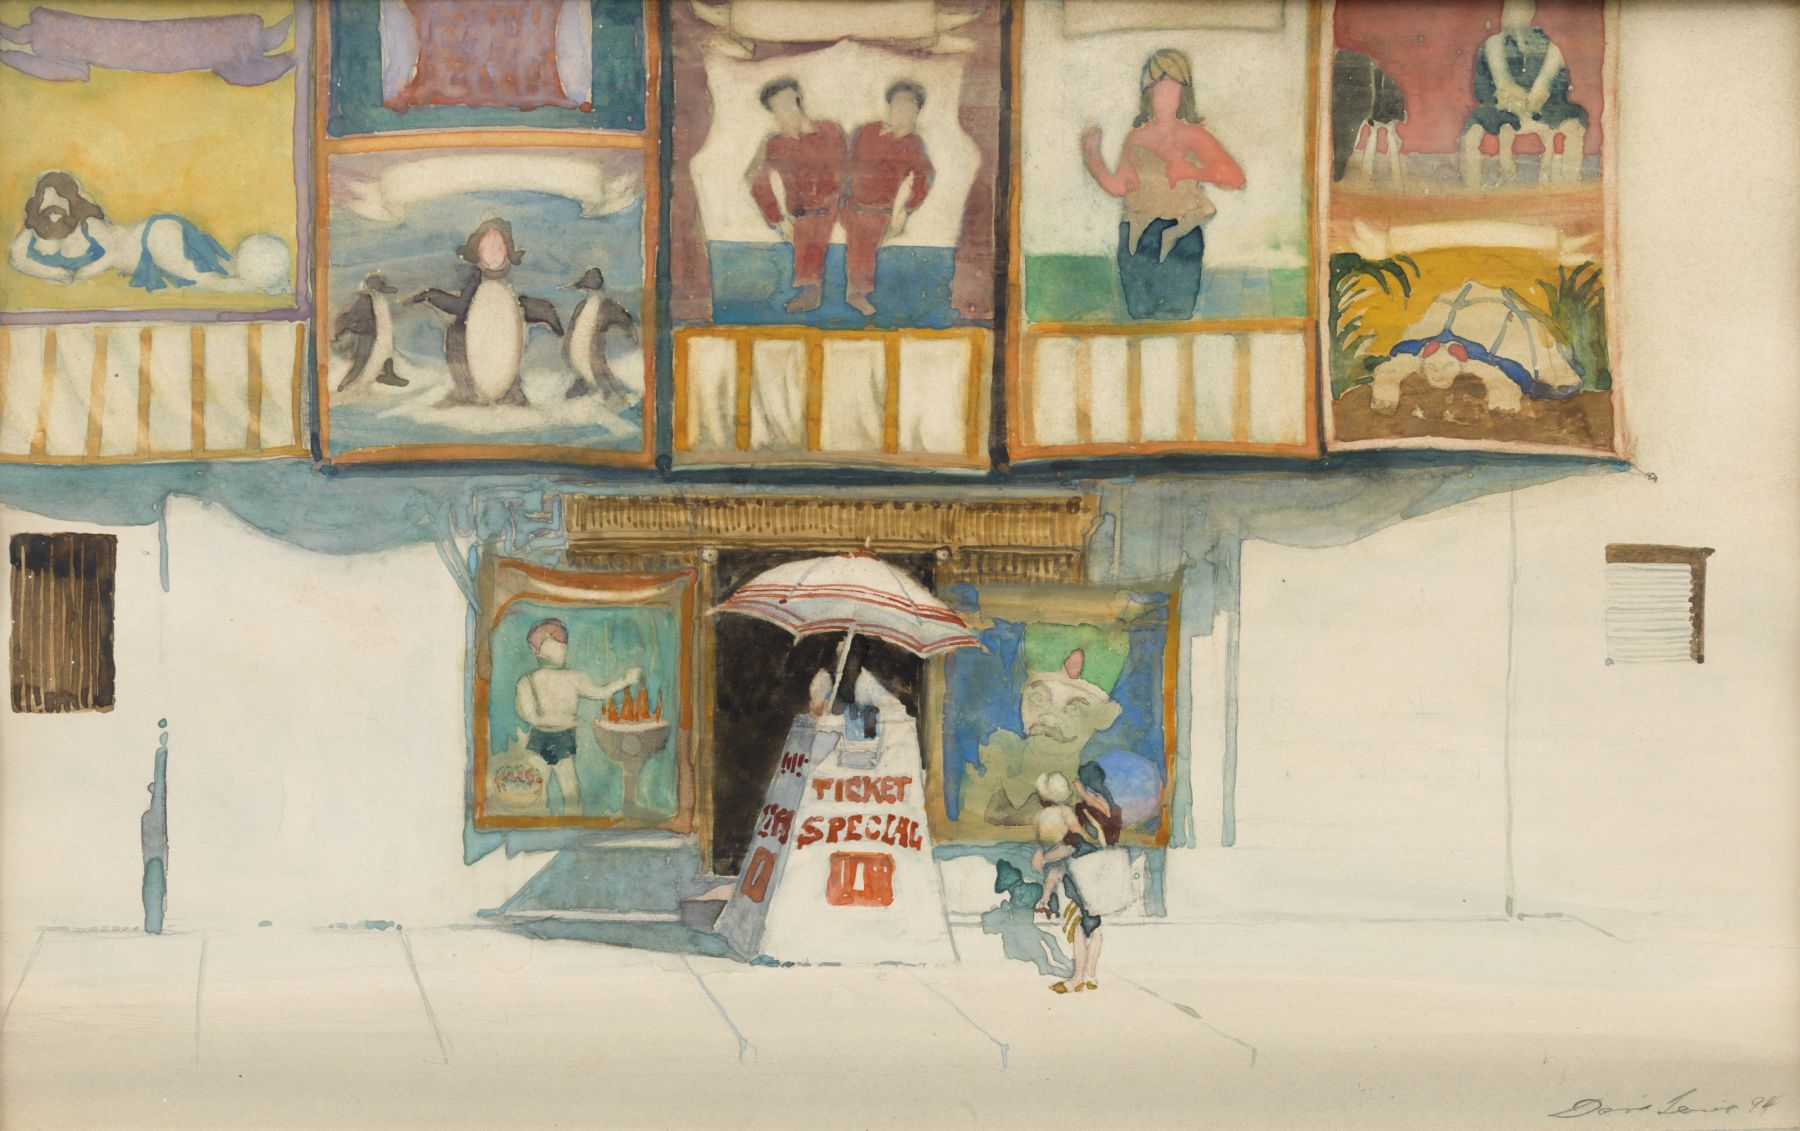 David Levine, Freak House, 1994, watercolor on paper, 11 x 17 1/2 inches